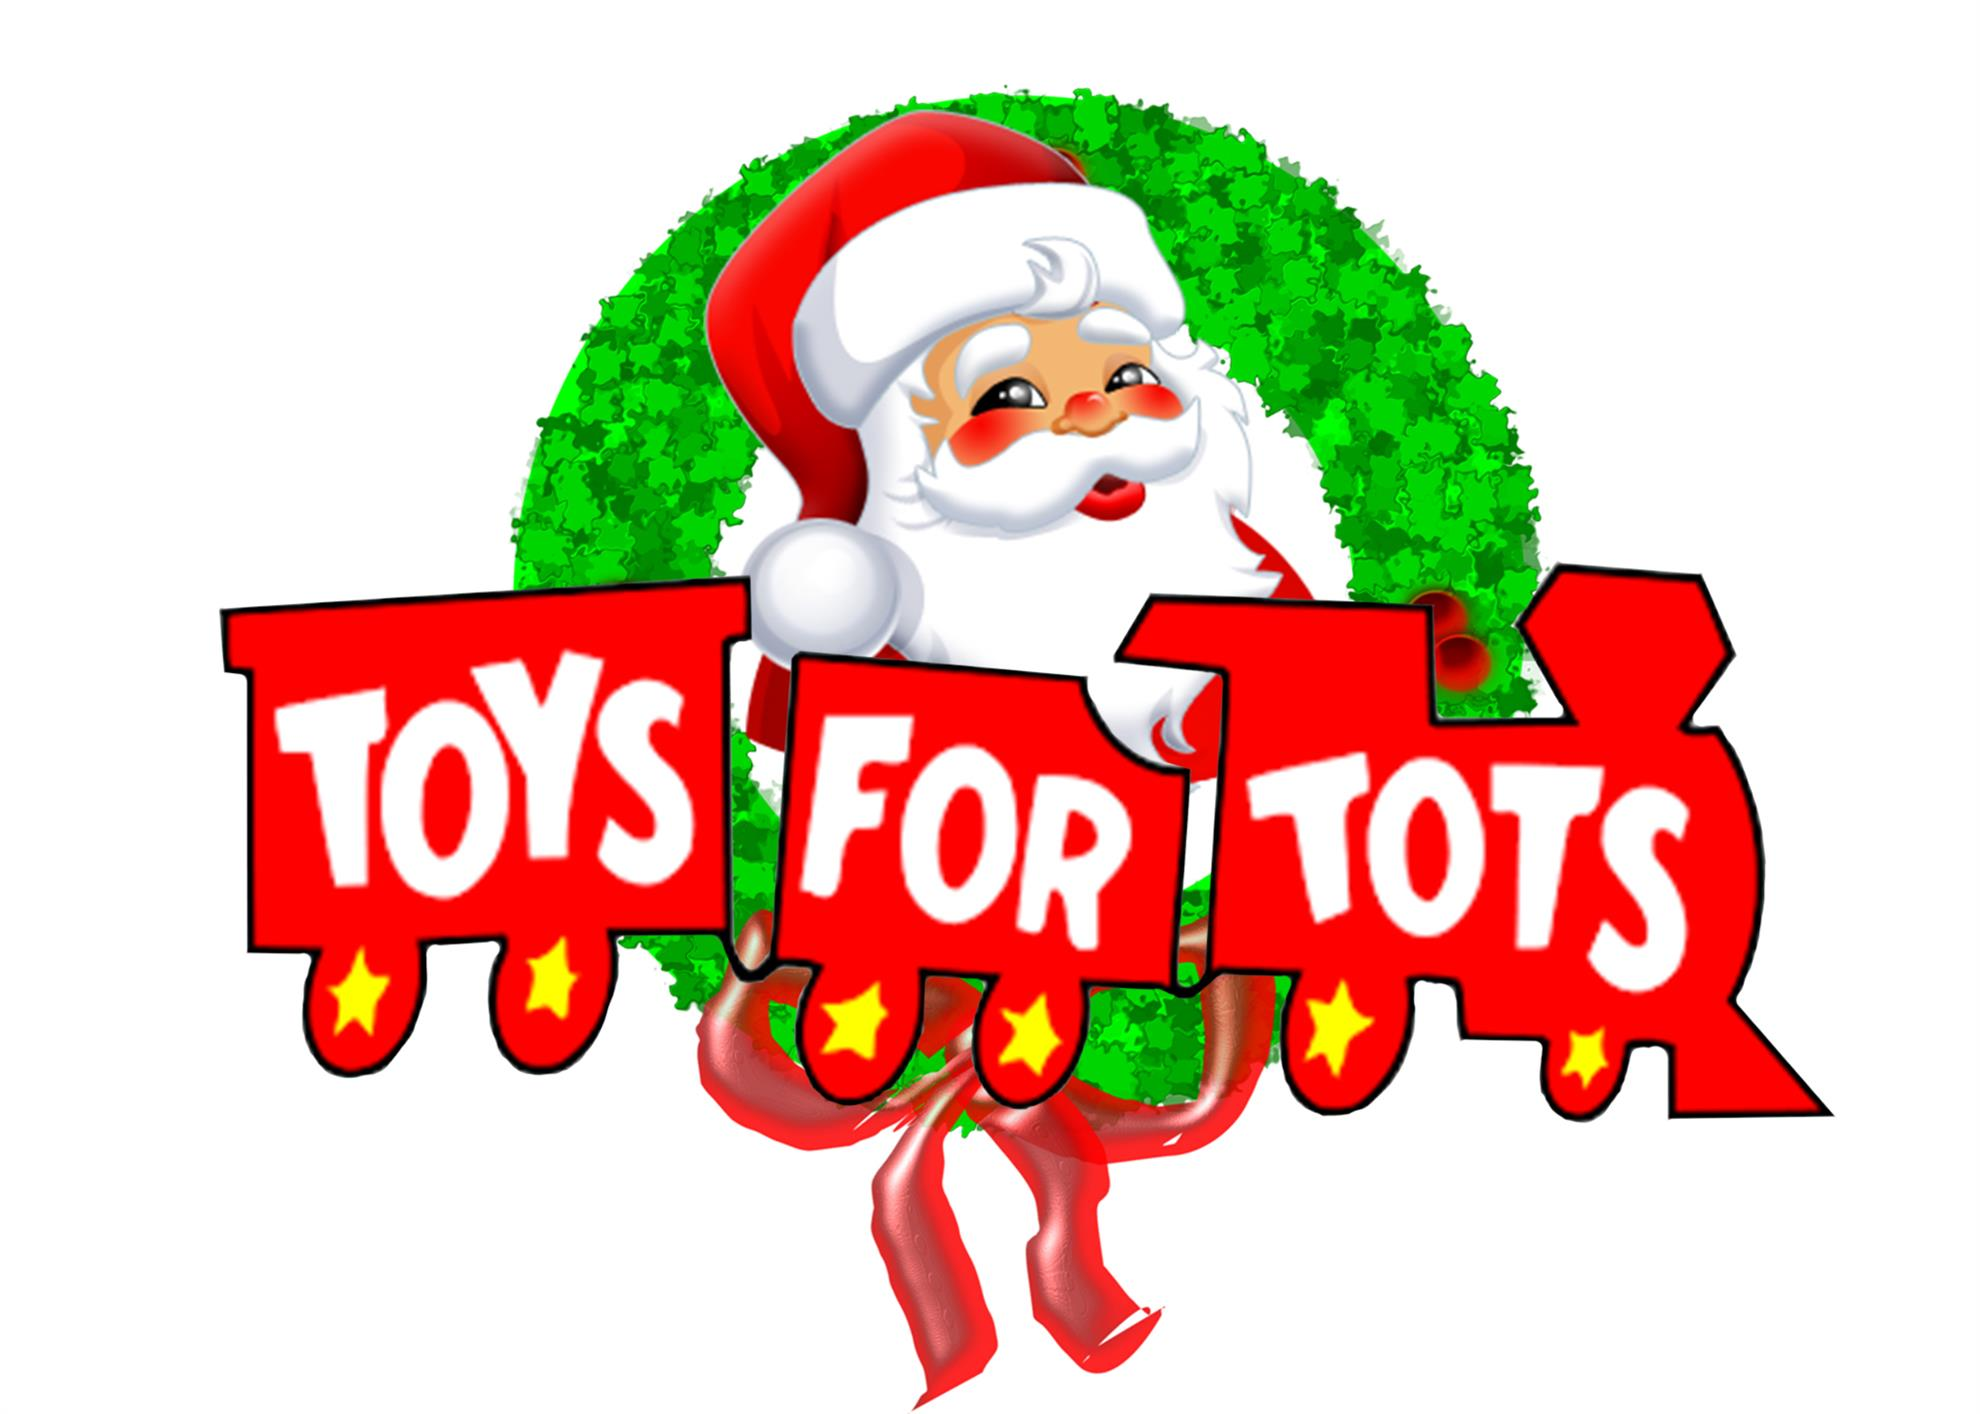 Toys For Tots Clipart : Home page rotary club of fredericksburg